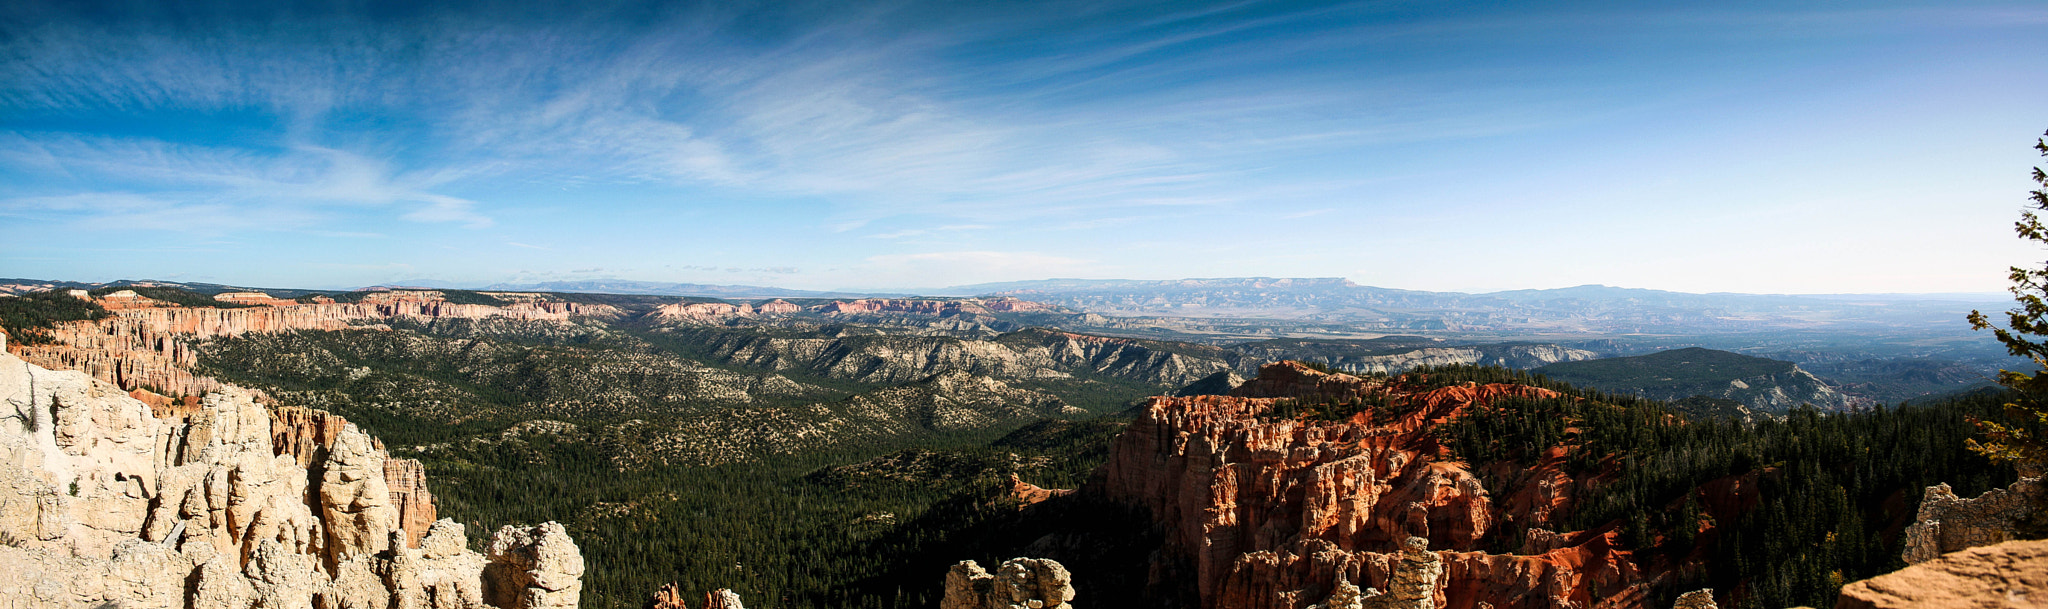 Photograph Brice Canyon by Nicolas M. on 500px